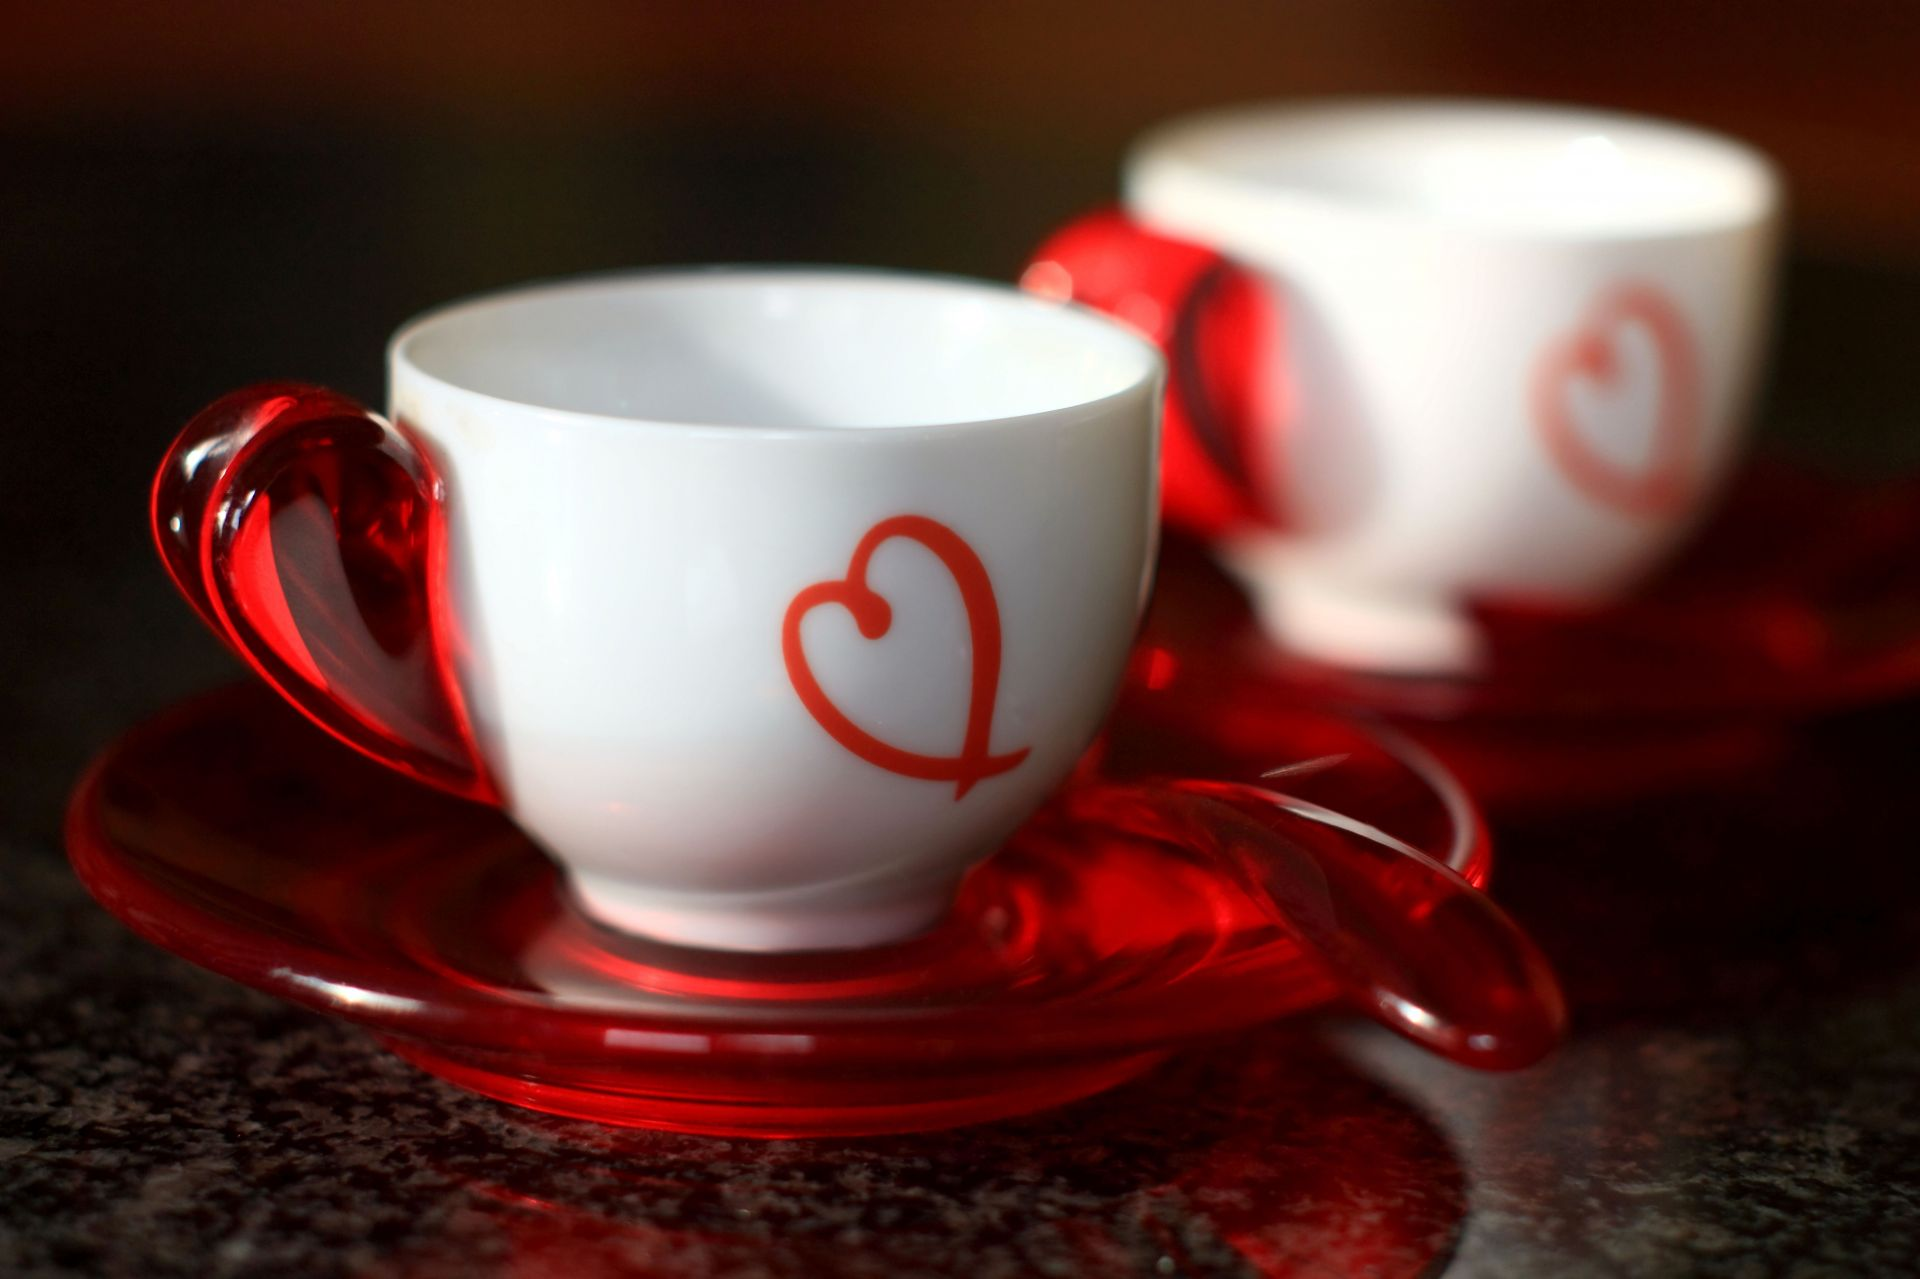 spoon red heart White cups Cup red spoon white